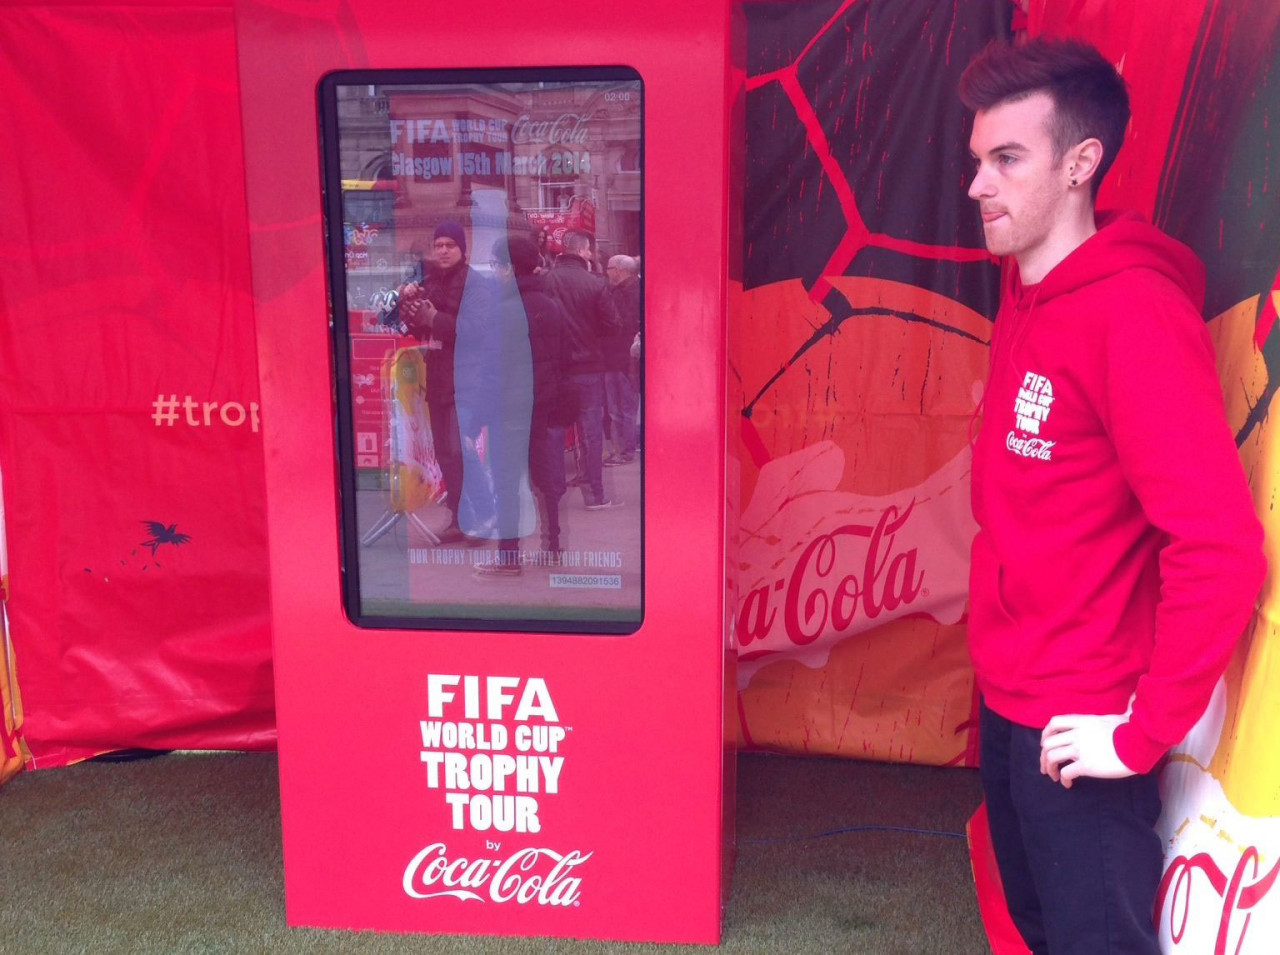 Air Graffiti Touch, Interactive Digital Surface: Vertical pod setup at a Coca Cola event